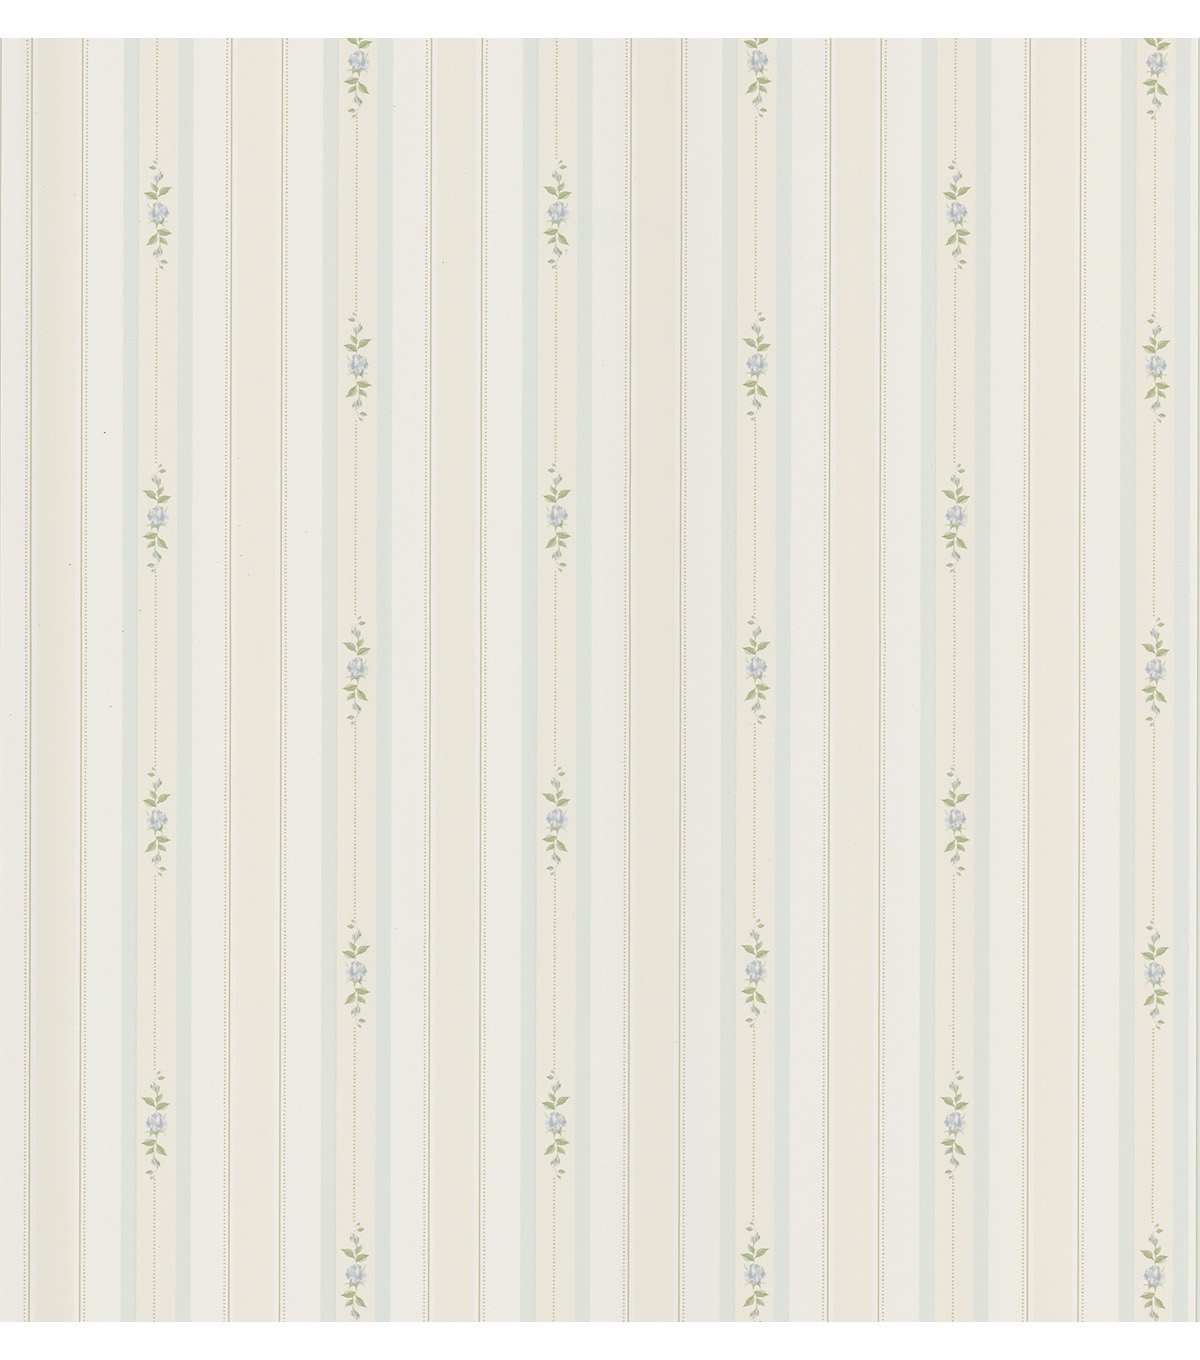 Rosebud Light Blue Floral Stripe Wallpaper Sample